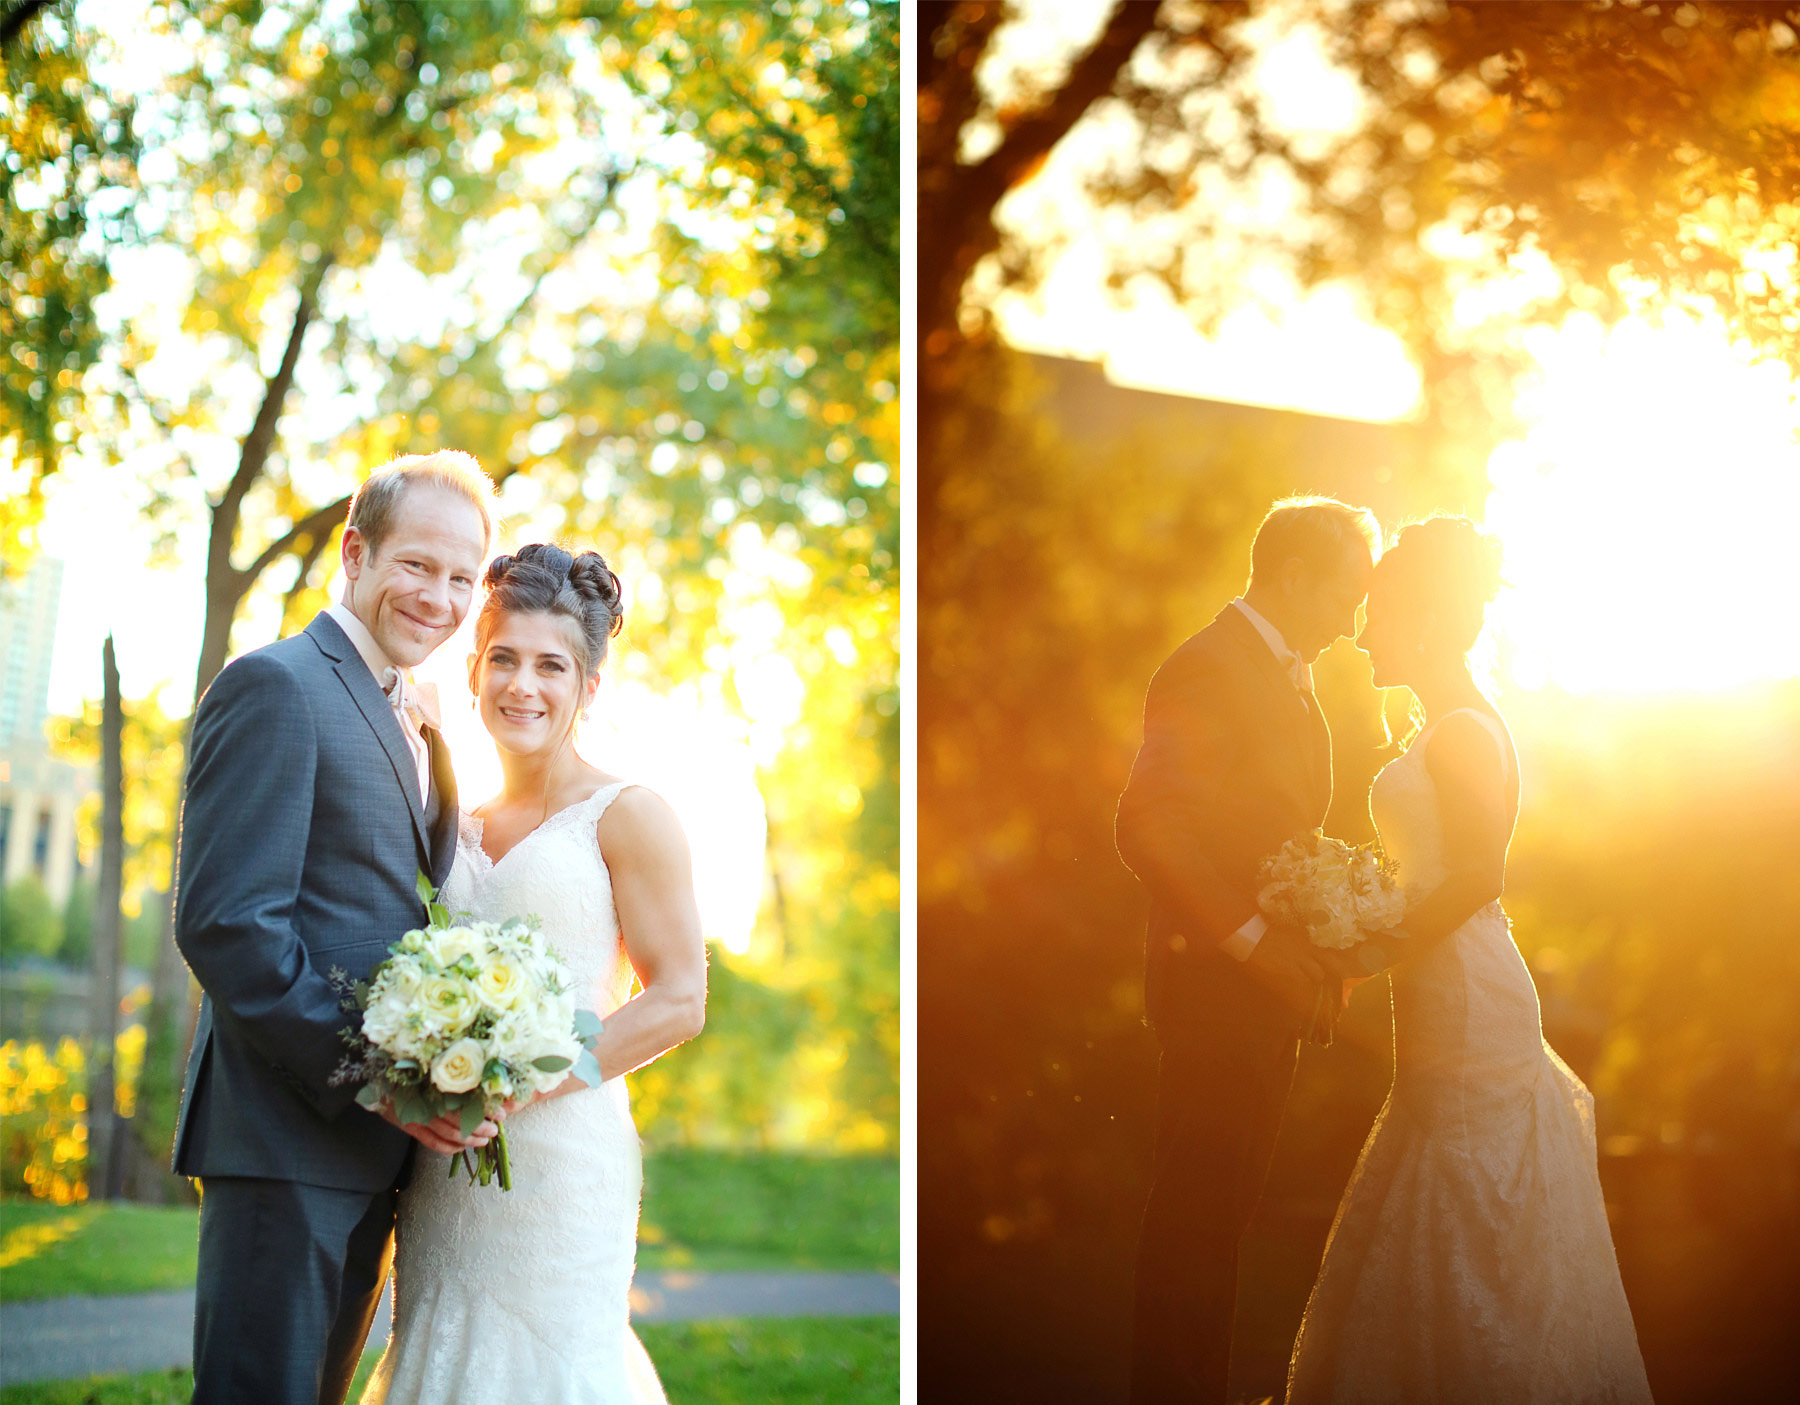 21-Minneapolis-Minnesota-Wedding-Photographer-by-Andrew-Vick-Photography-Fall-Autumn-Bride-Groom-Flowers-Sunset-Paula-and-Jason.jpg